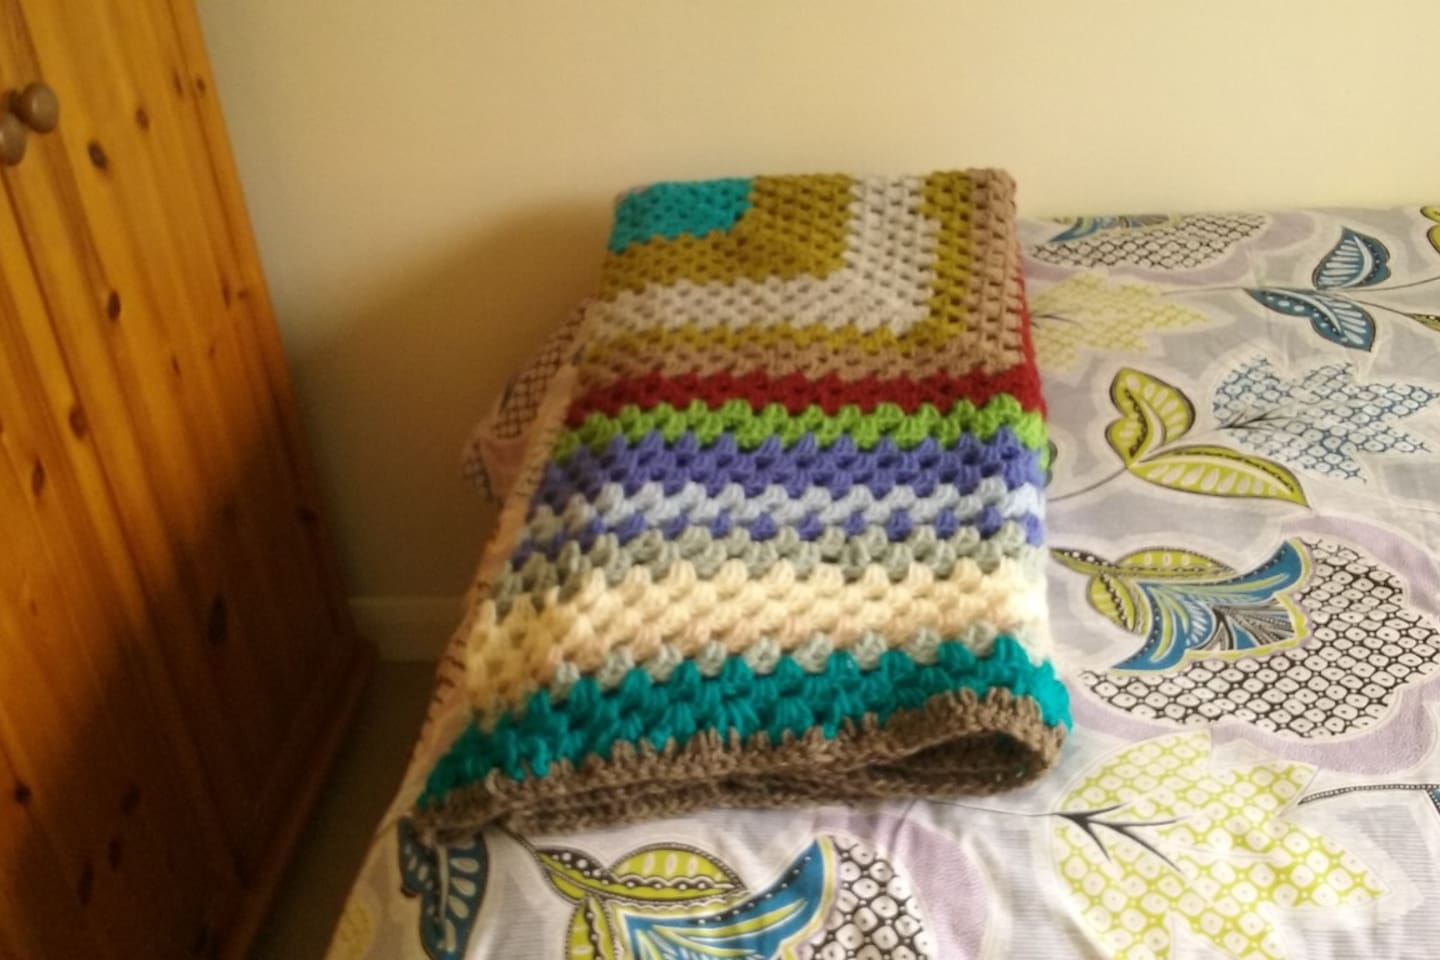 just made a homemade crochet blanket for your comfort...........